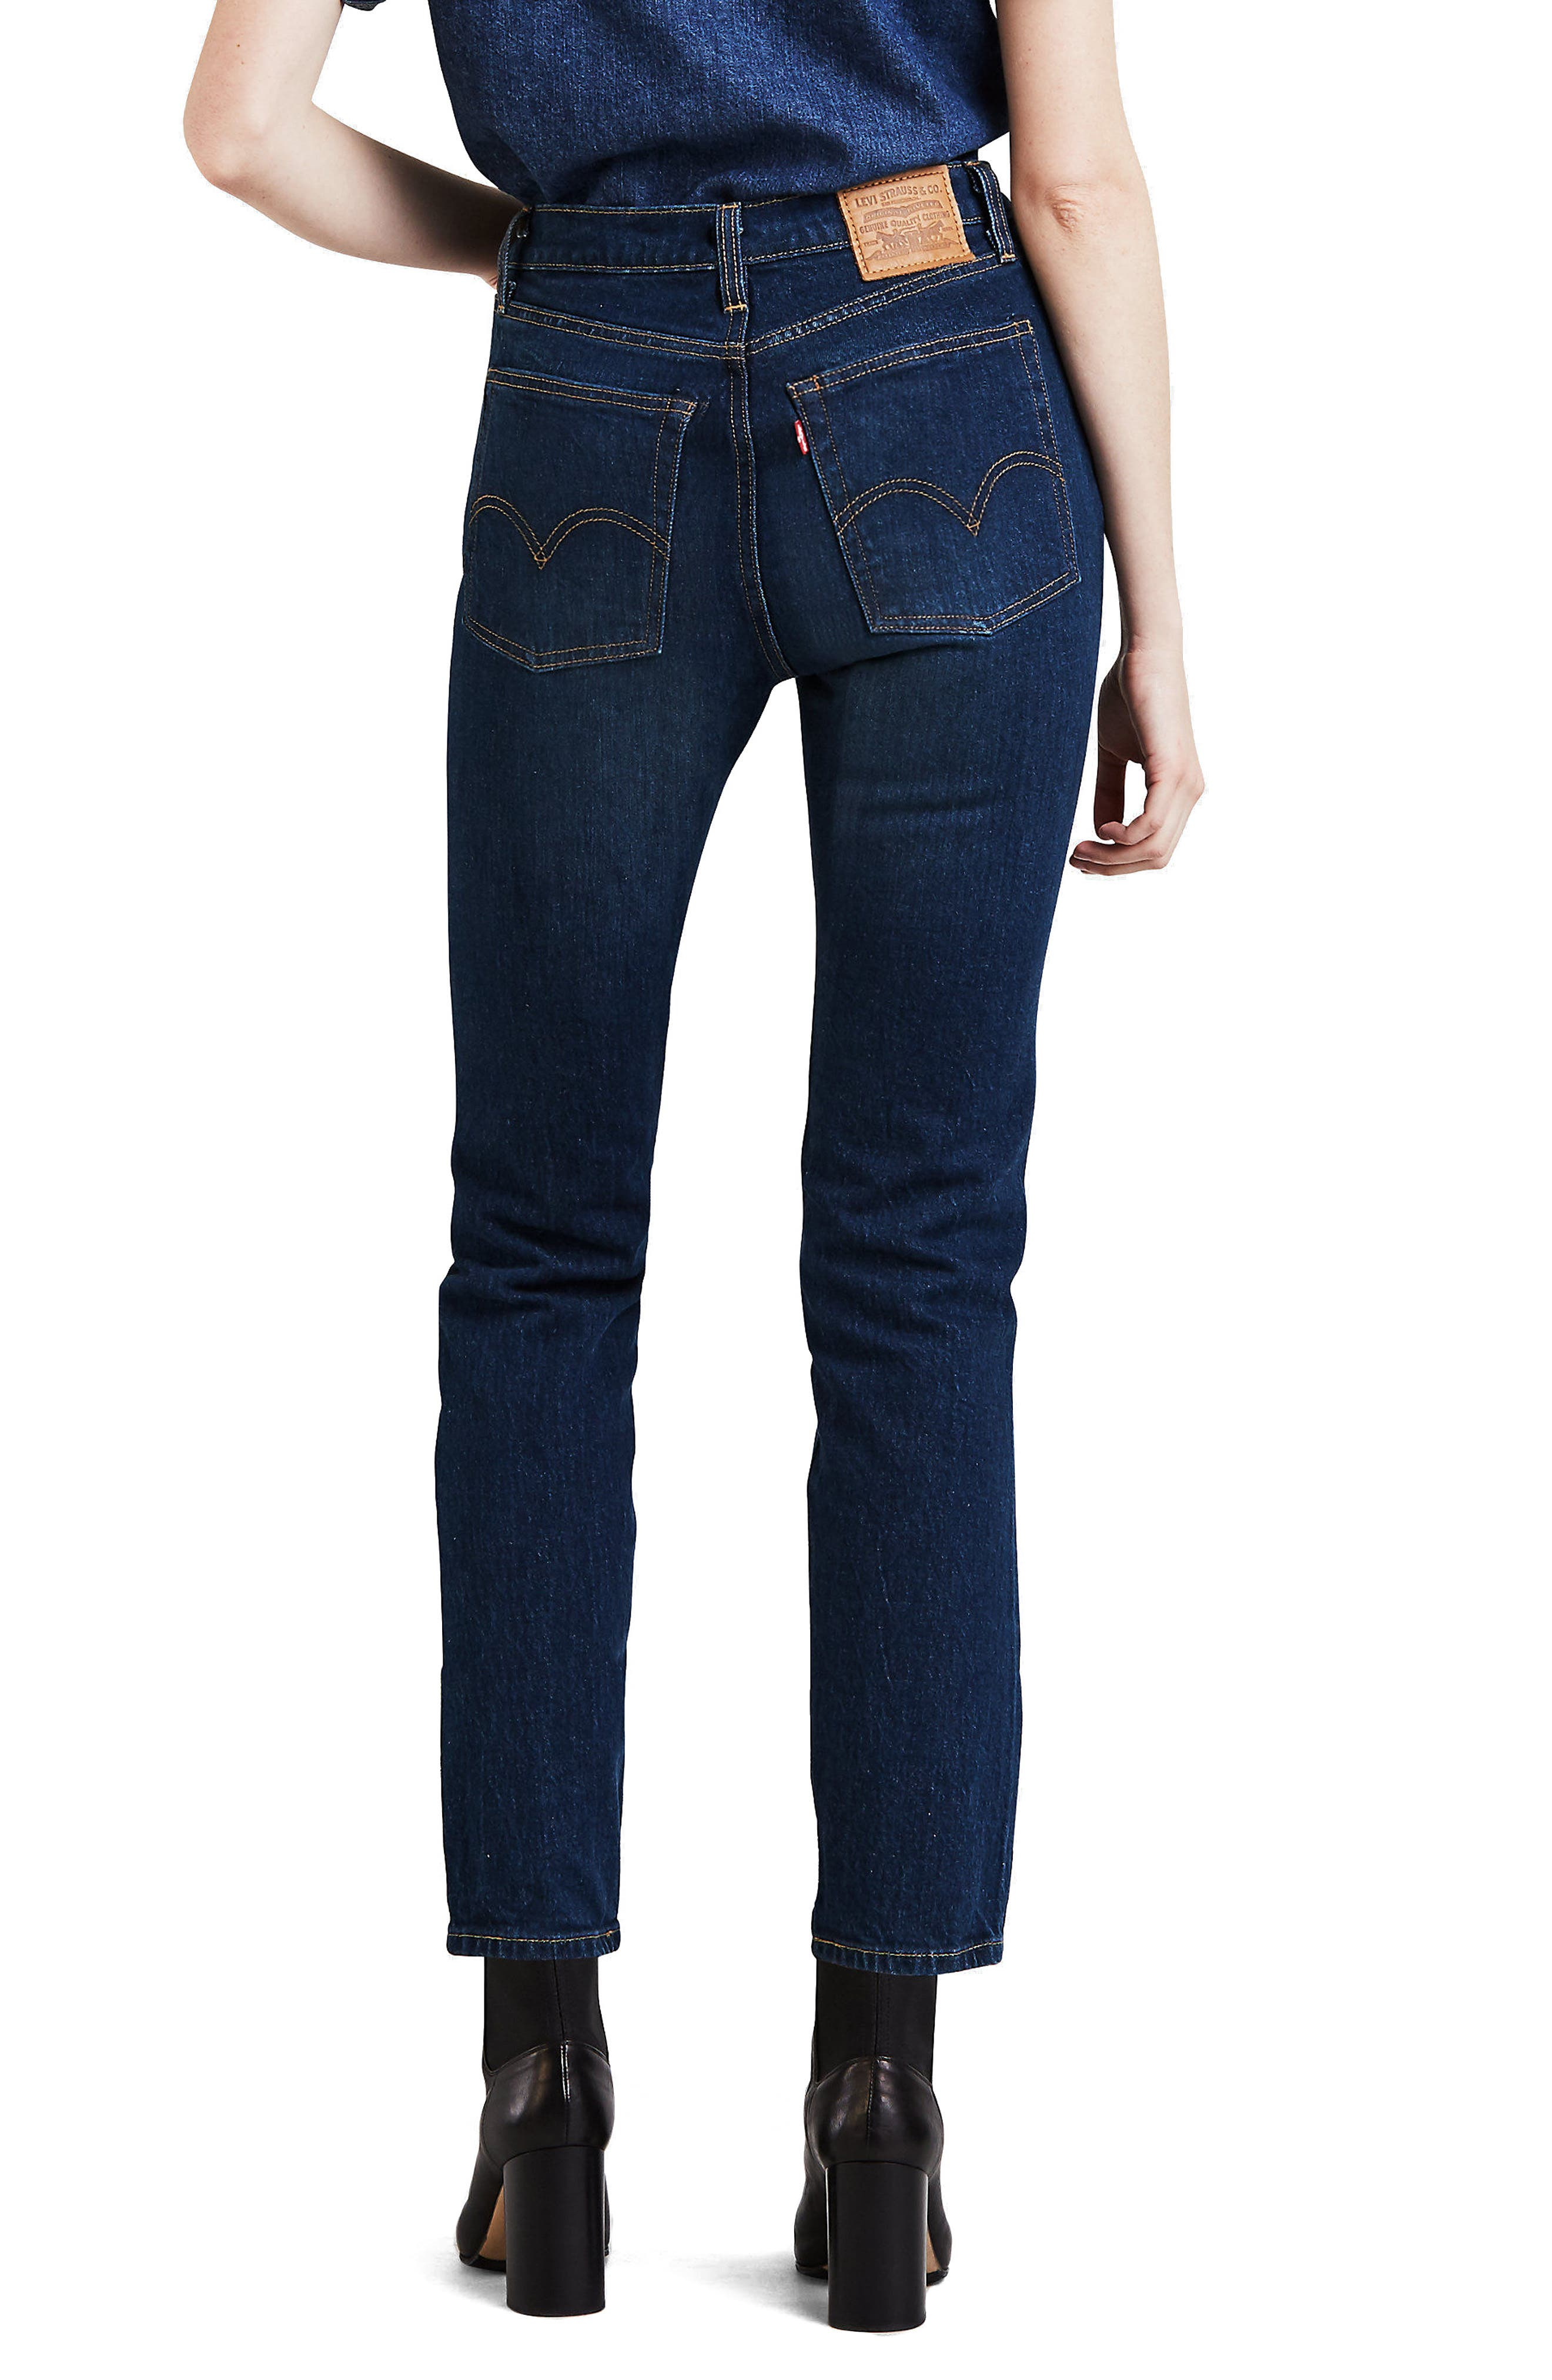 LEVI'S<SUP>®</SUP>, Wedgie Icon Fit High Waist Crop Jeans, Alternate thumbnail 2, color, AUTHENTIC FAVORITE